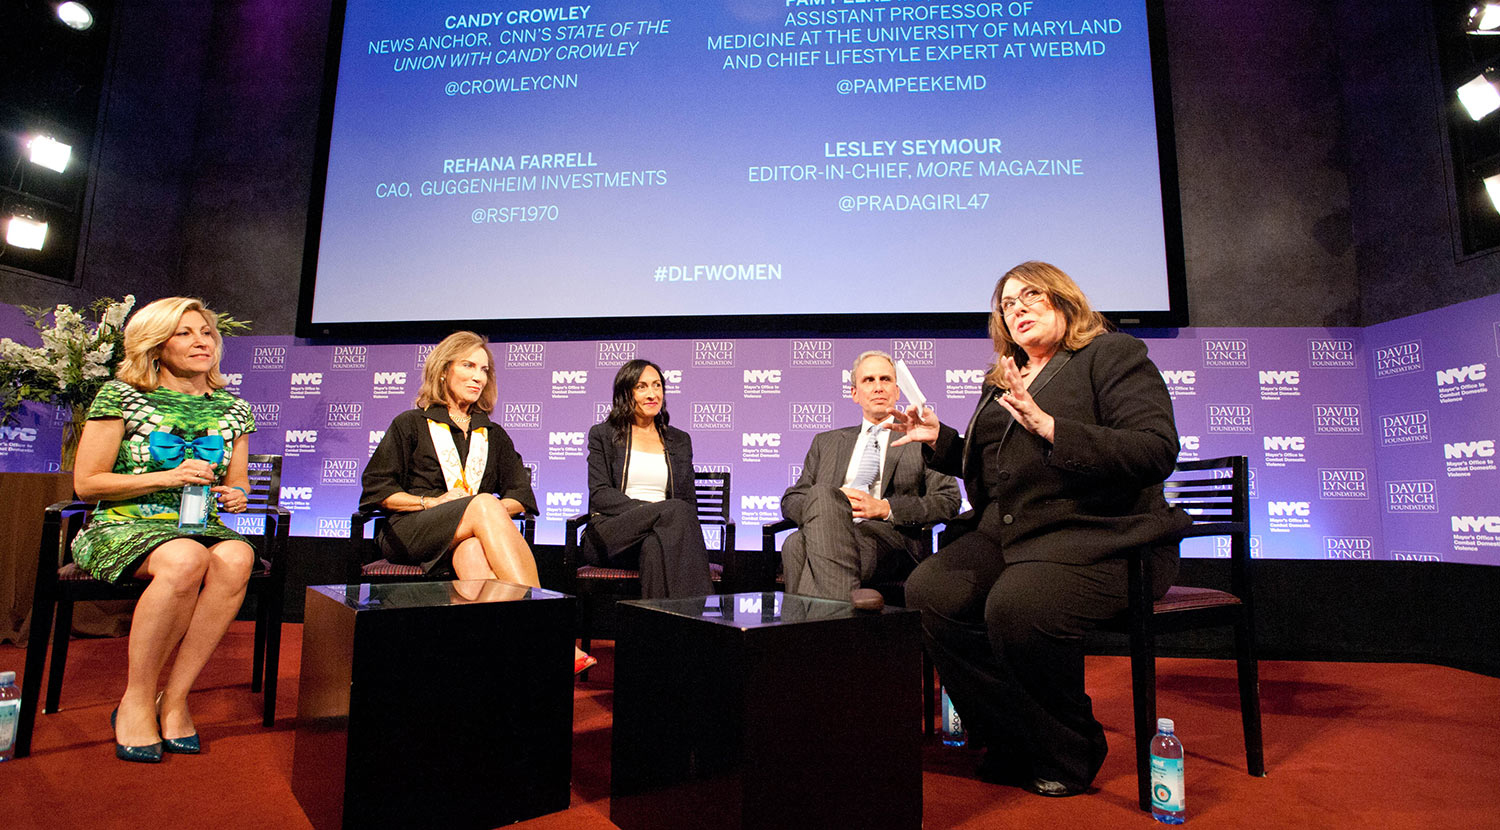 Lesley Seymour, Dr. Pamela Peeke, Rehana Farrell, Bob Roth, and Candy Crowley speak about meditation and stress.